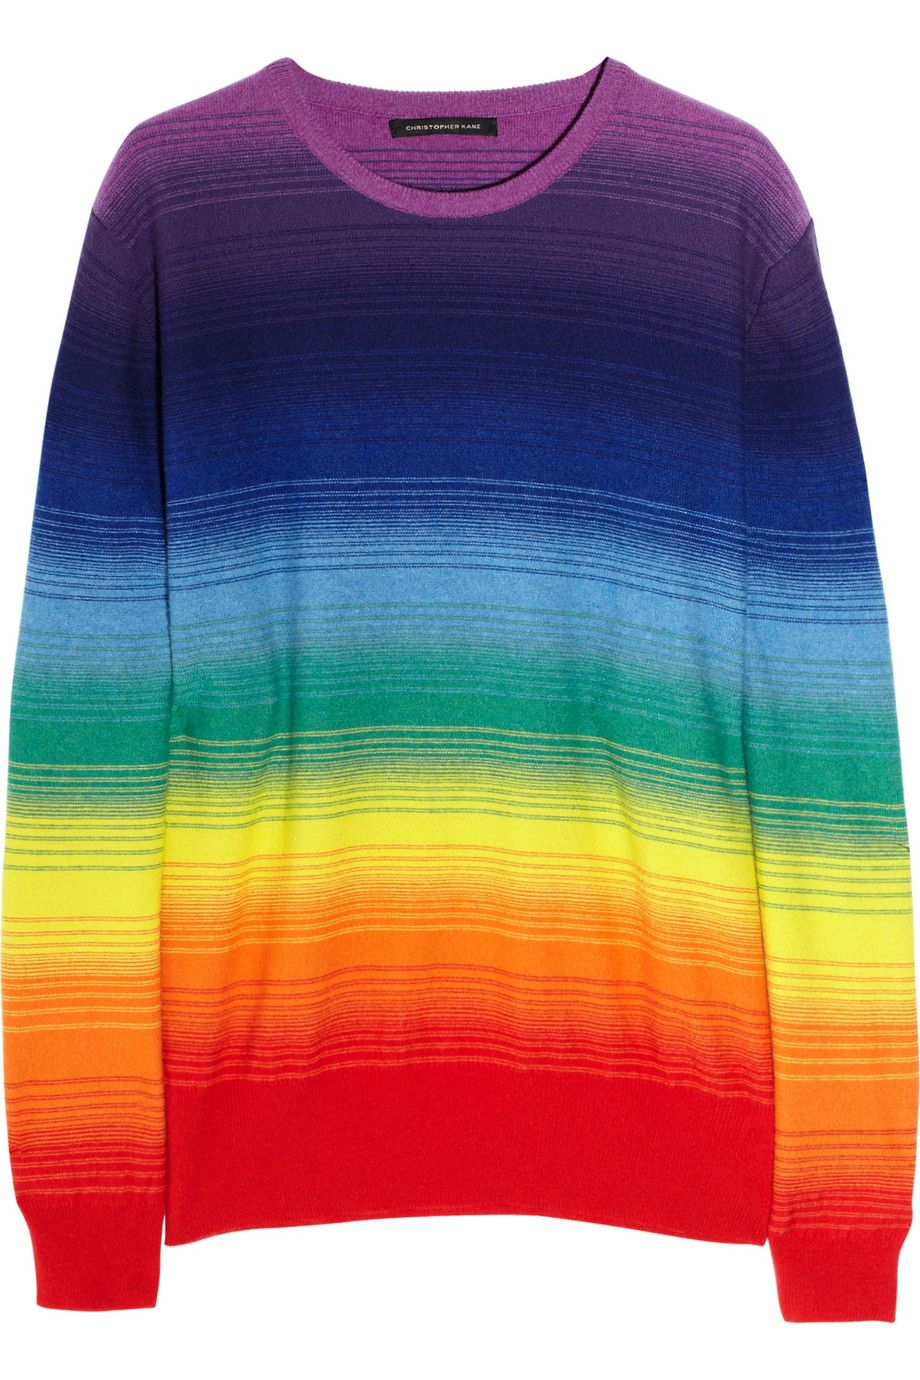 Rainbow Cashmere Sweater by Christopher Kane.  Who could not love this?